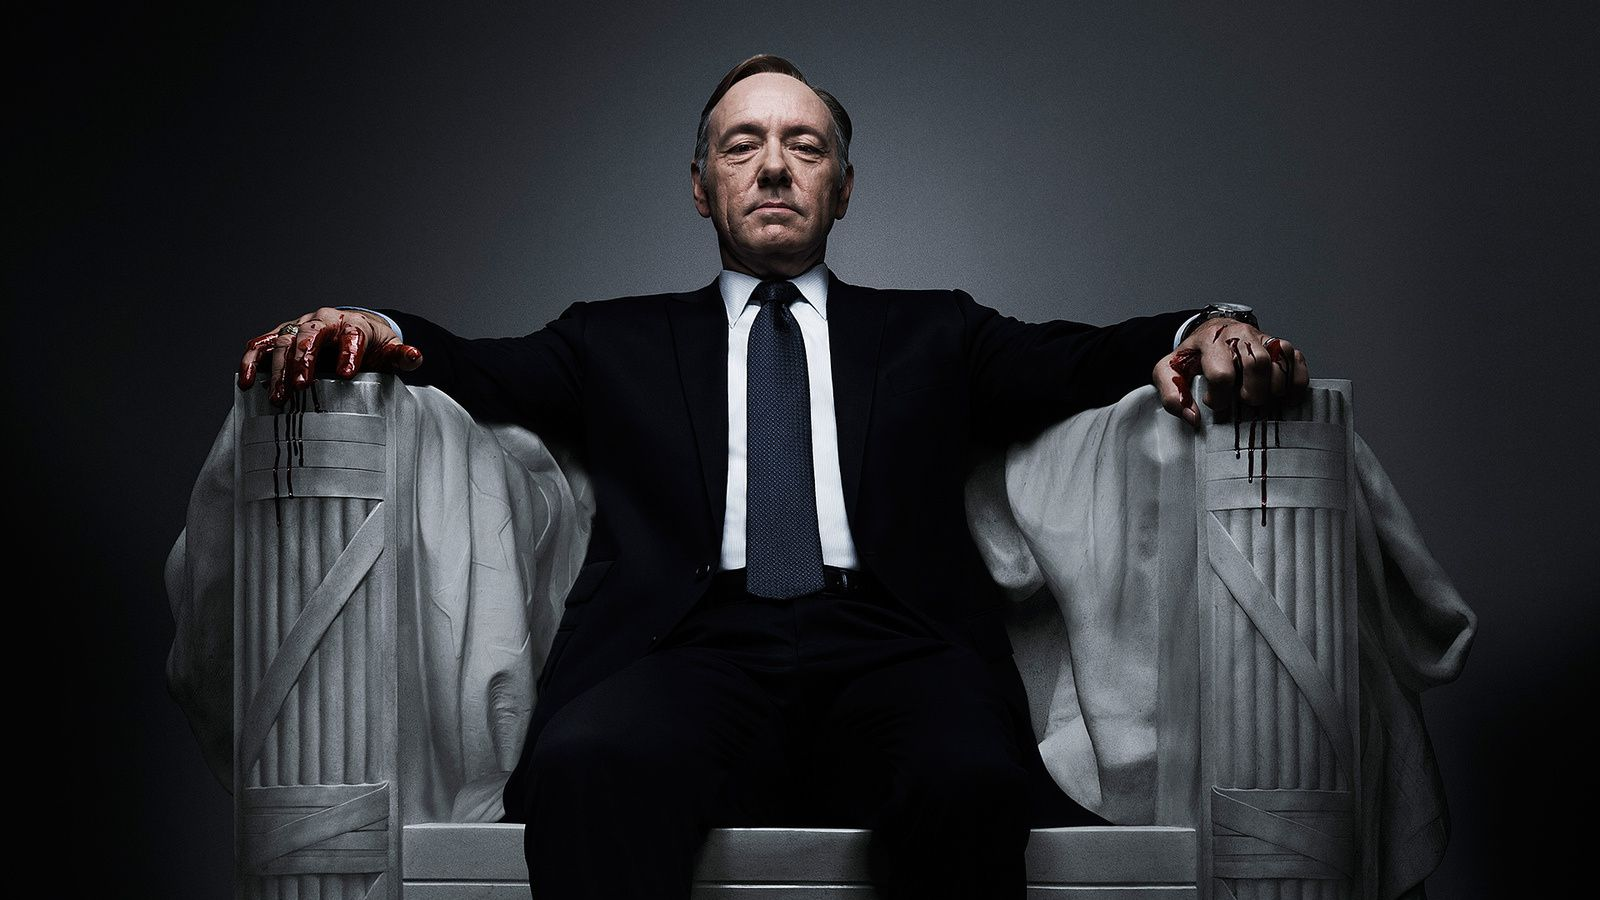 La série du jour, House of Cards